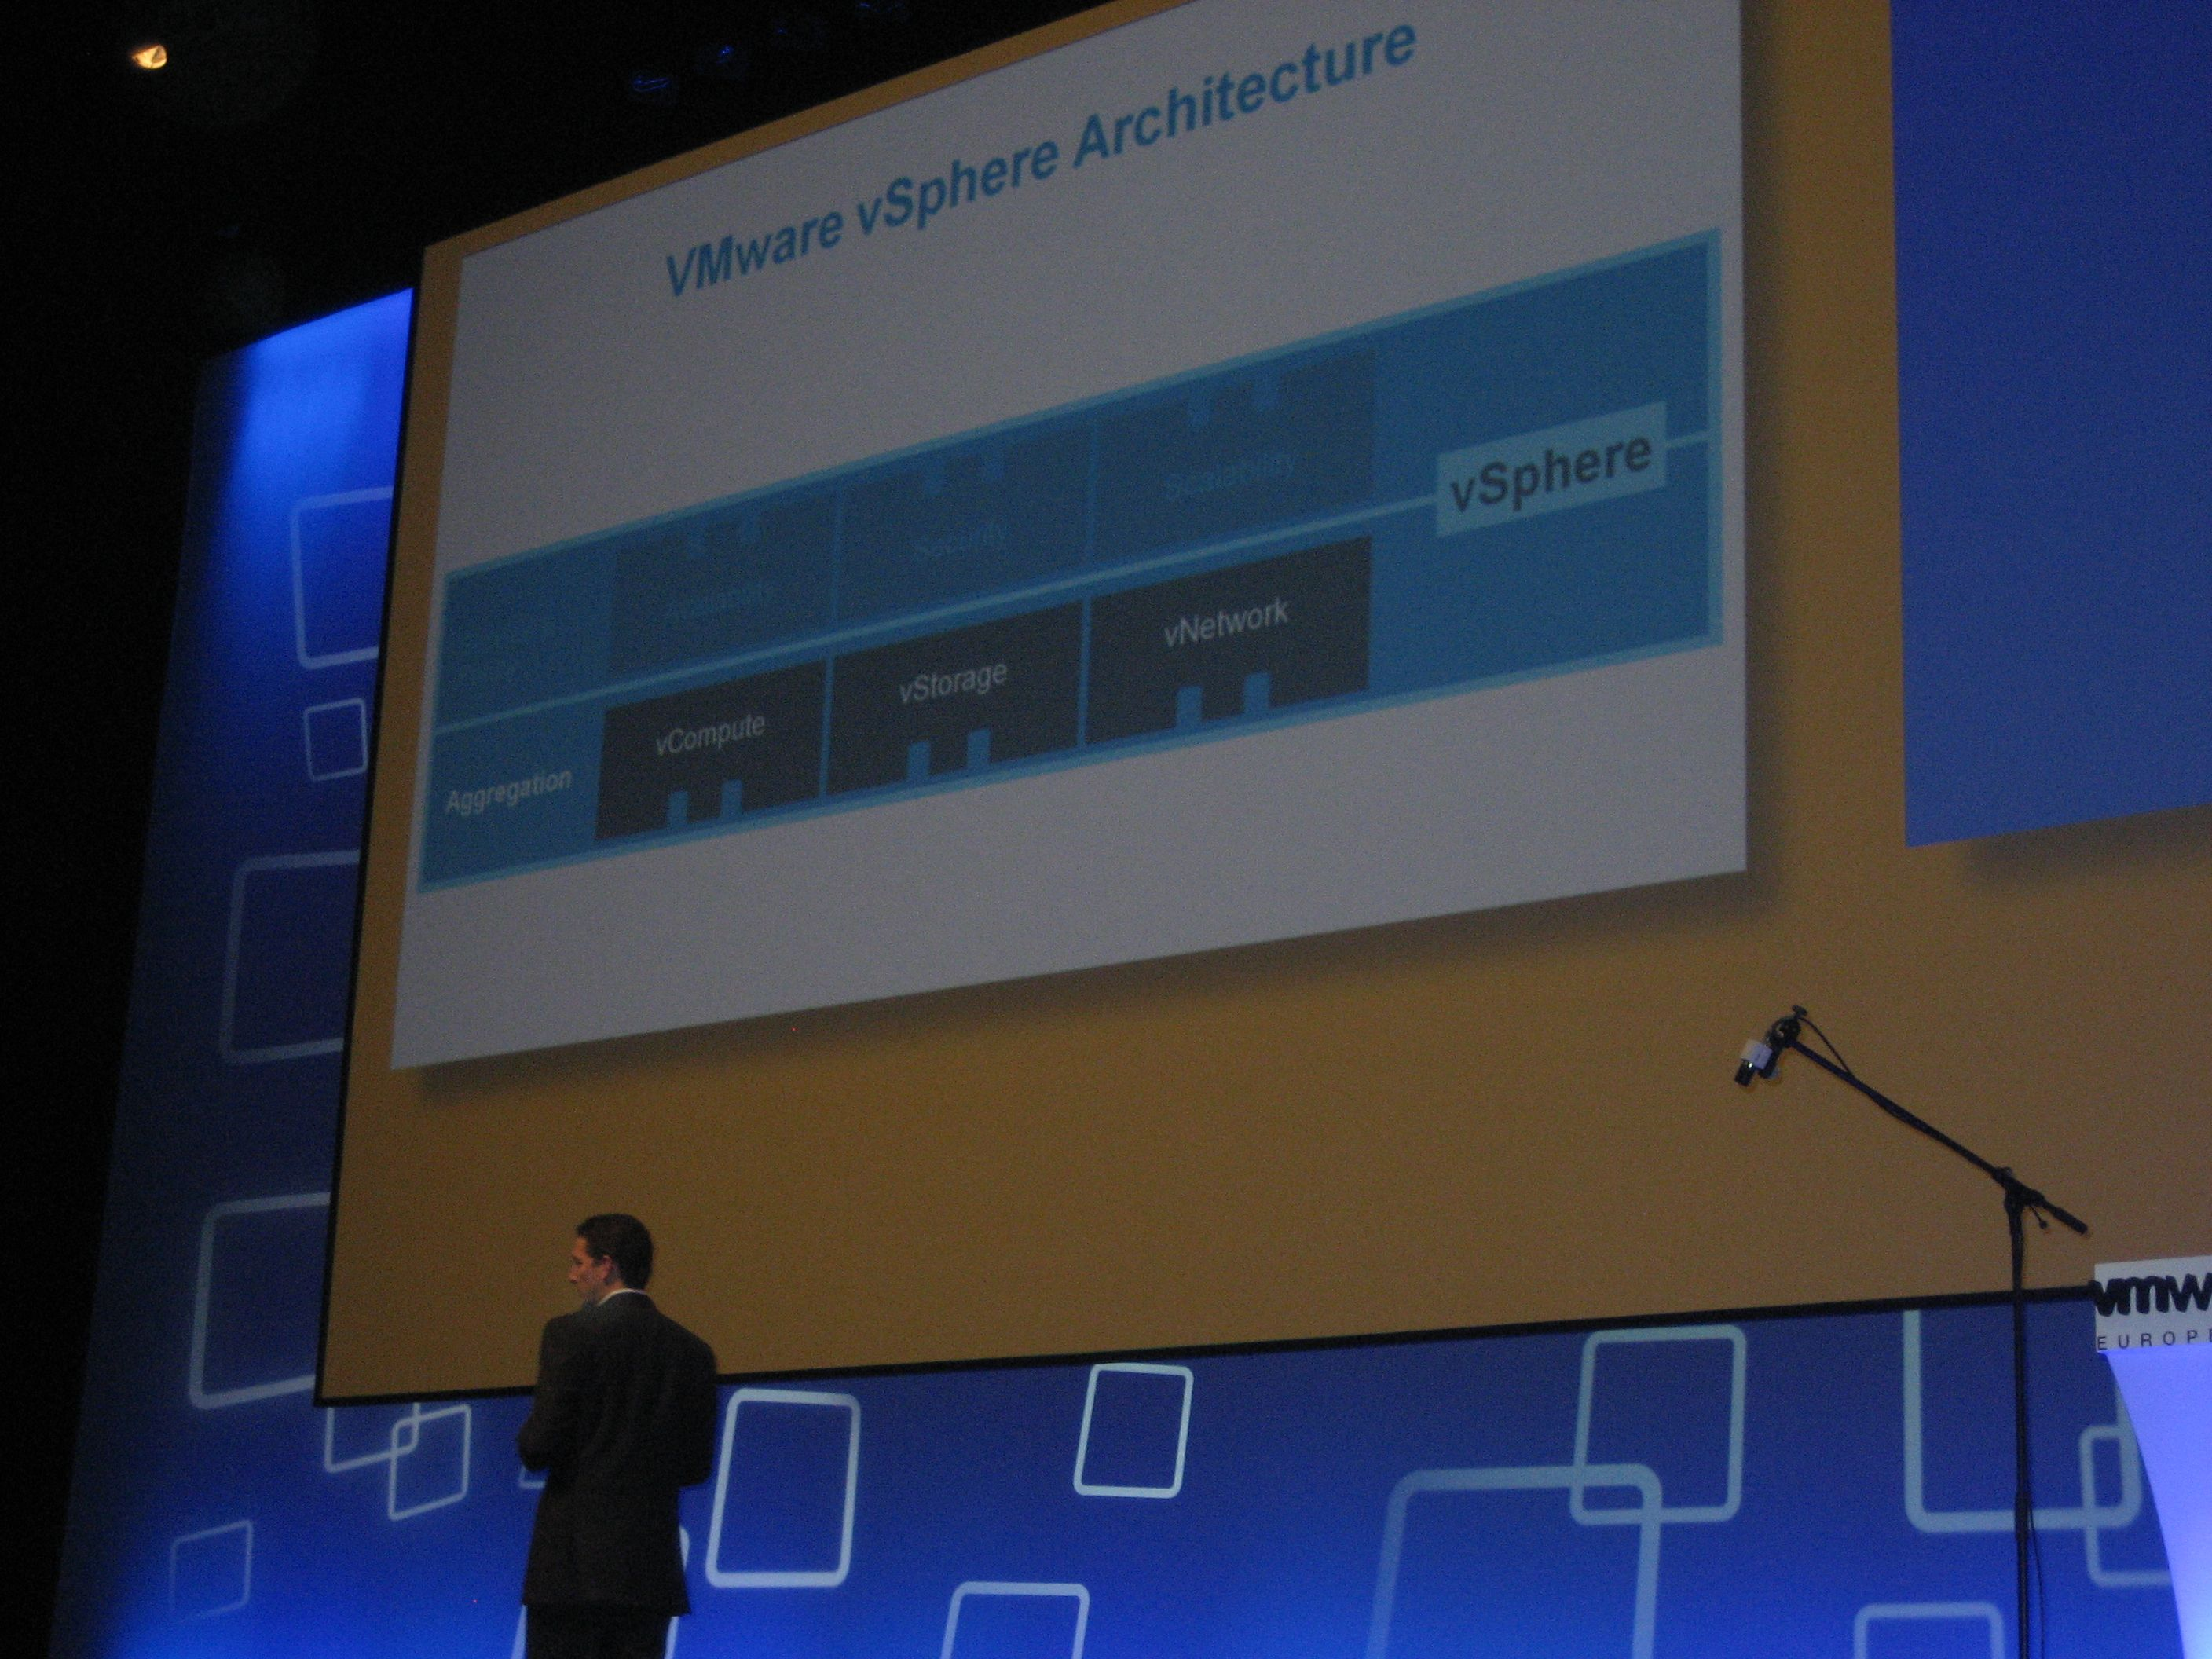 En vivo desde VMworld 09 Cannes –día 3: WMworld 09 second Keynote, Parte I